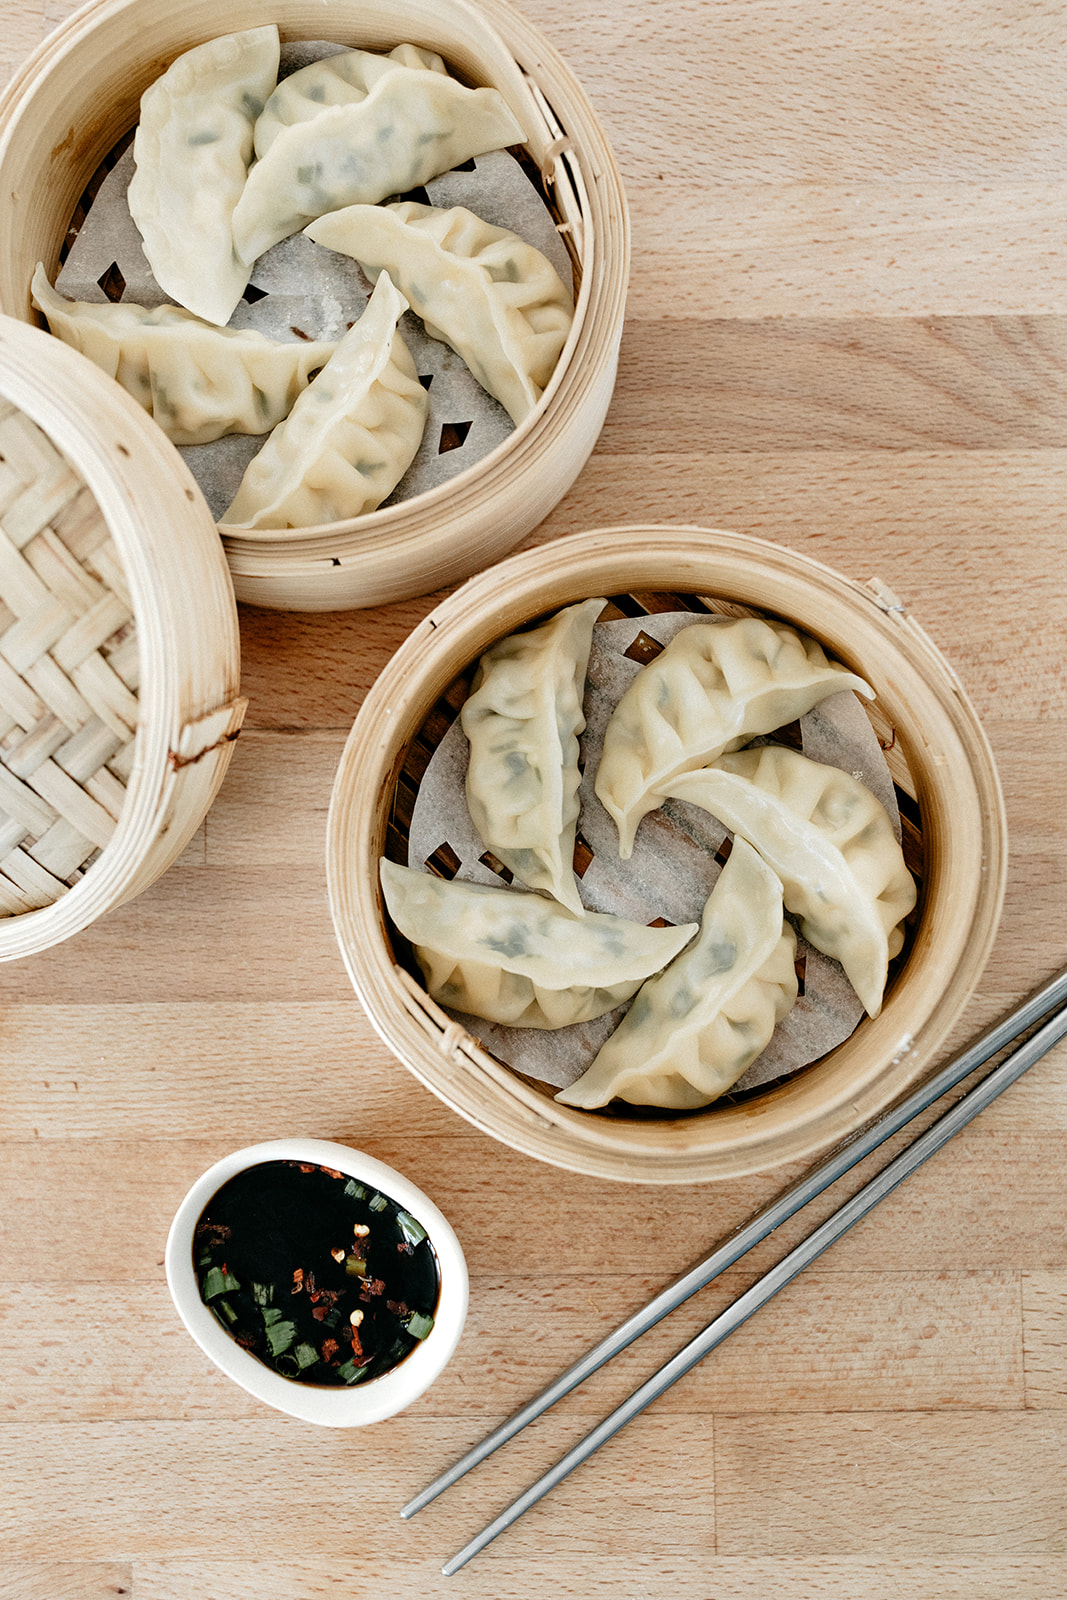 3-6-19-molly-yeh-egg-&-chive-potstickers-7.jpg